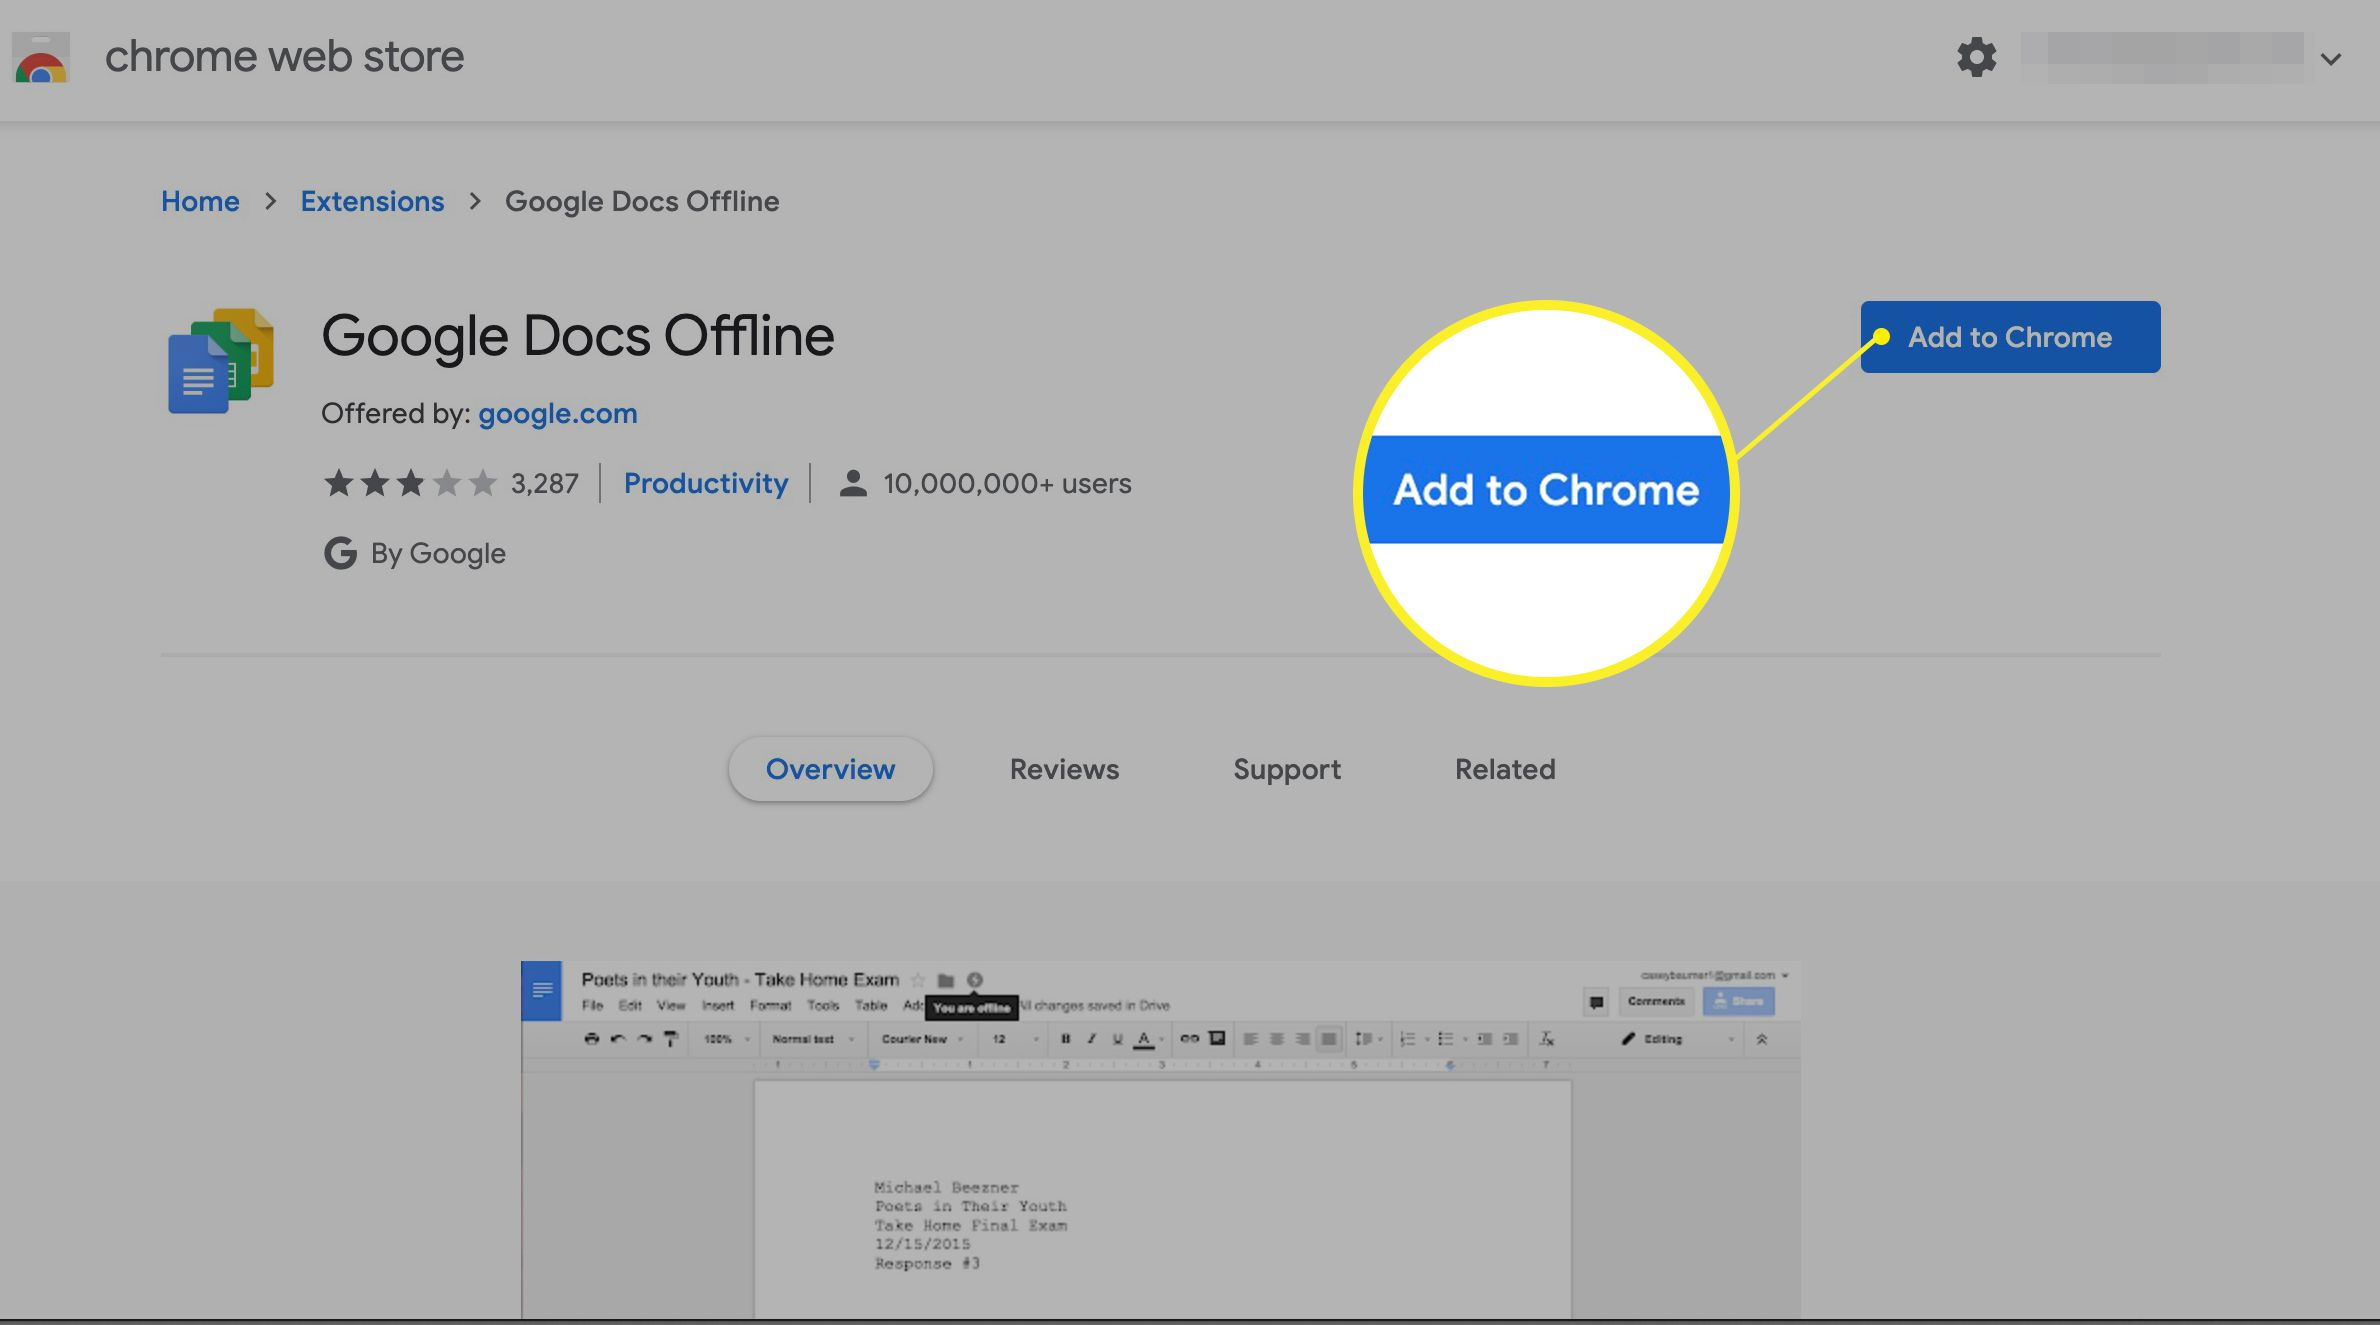 Add the Google Docs Offline extension to Chrome in Chrome Web Store